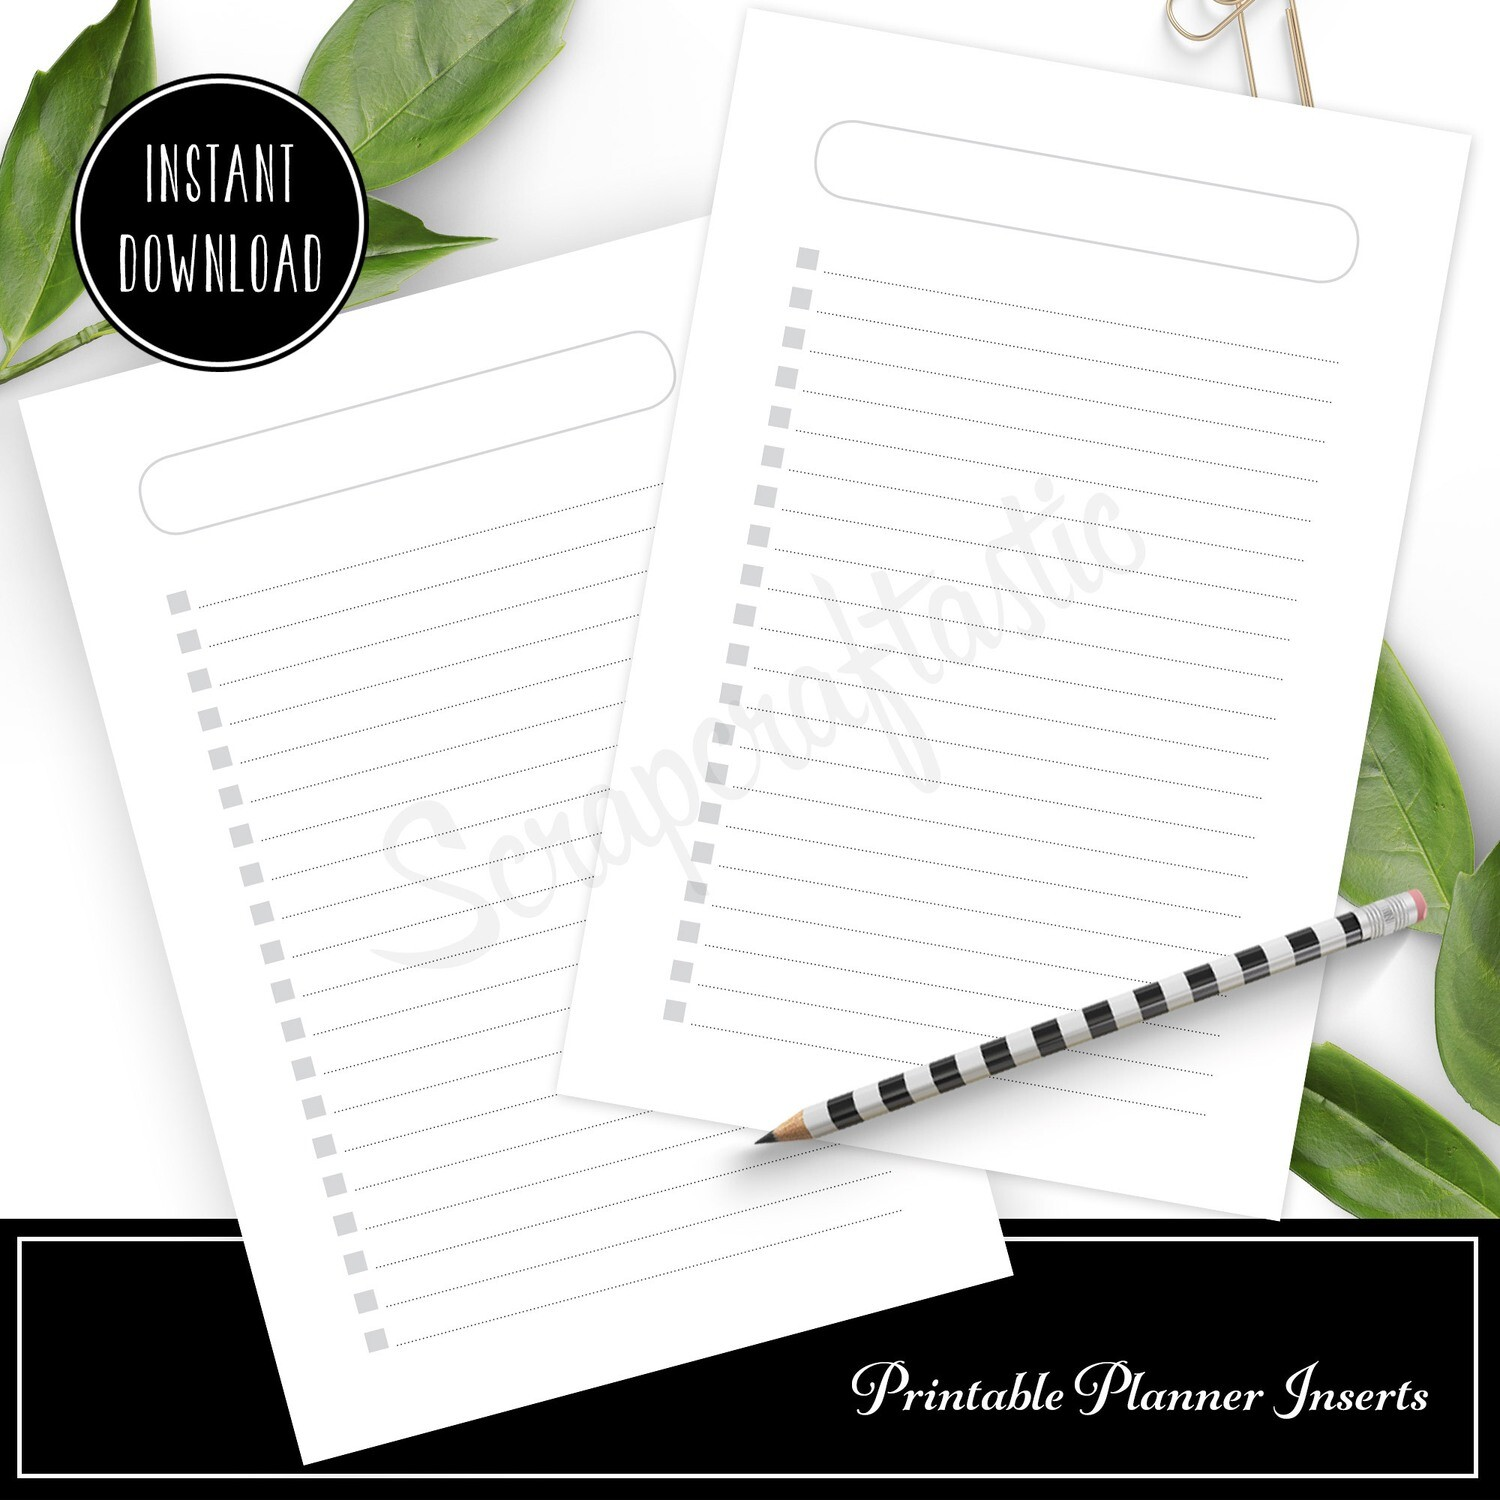 PERSONAL WIDE - Checklist Printable Planner Inserts